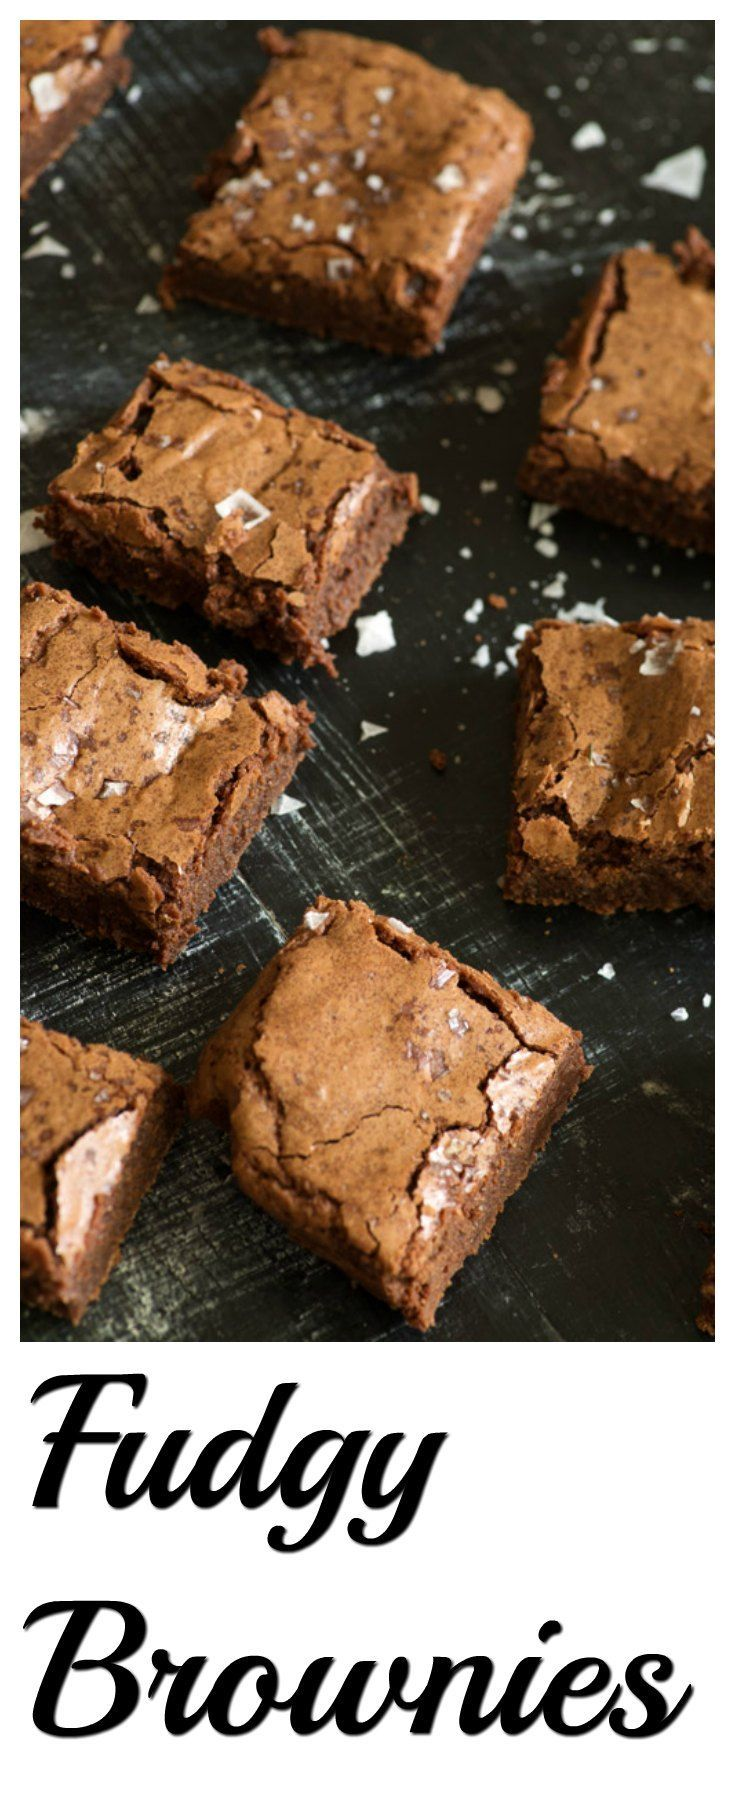 Fudgy Brownies – If you're looking for brownies that are fudgy and not dry, you are going to LOVE these. Melissa Clark's recipe is now my go-to PERFECT brownie recipe